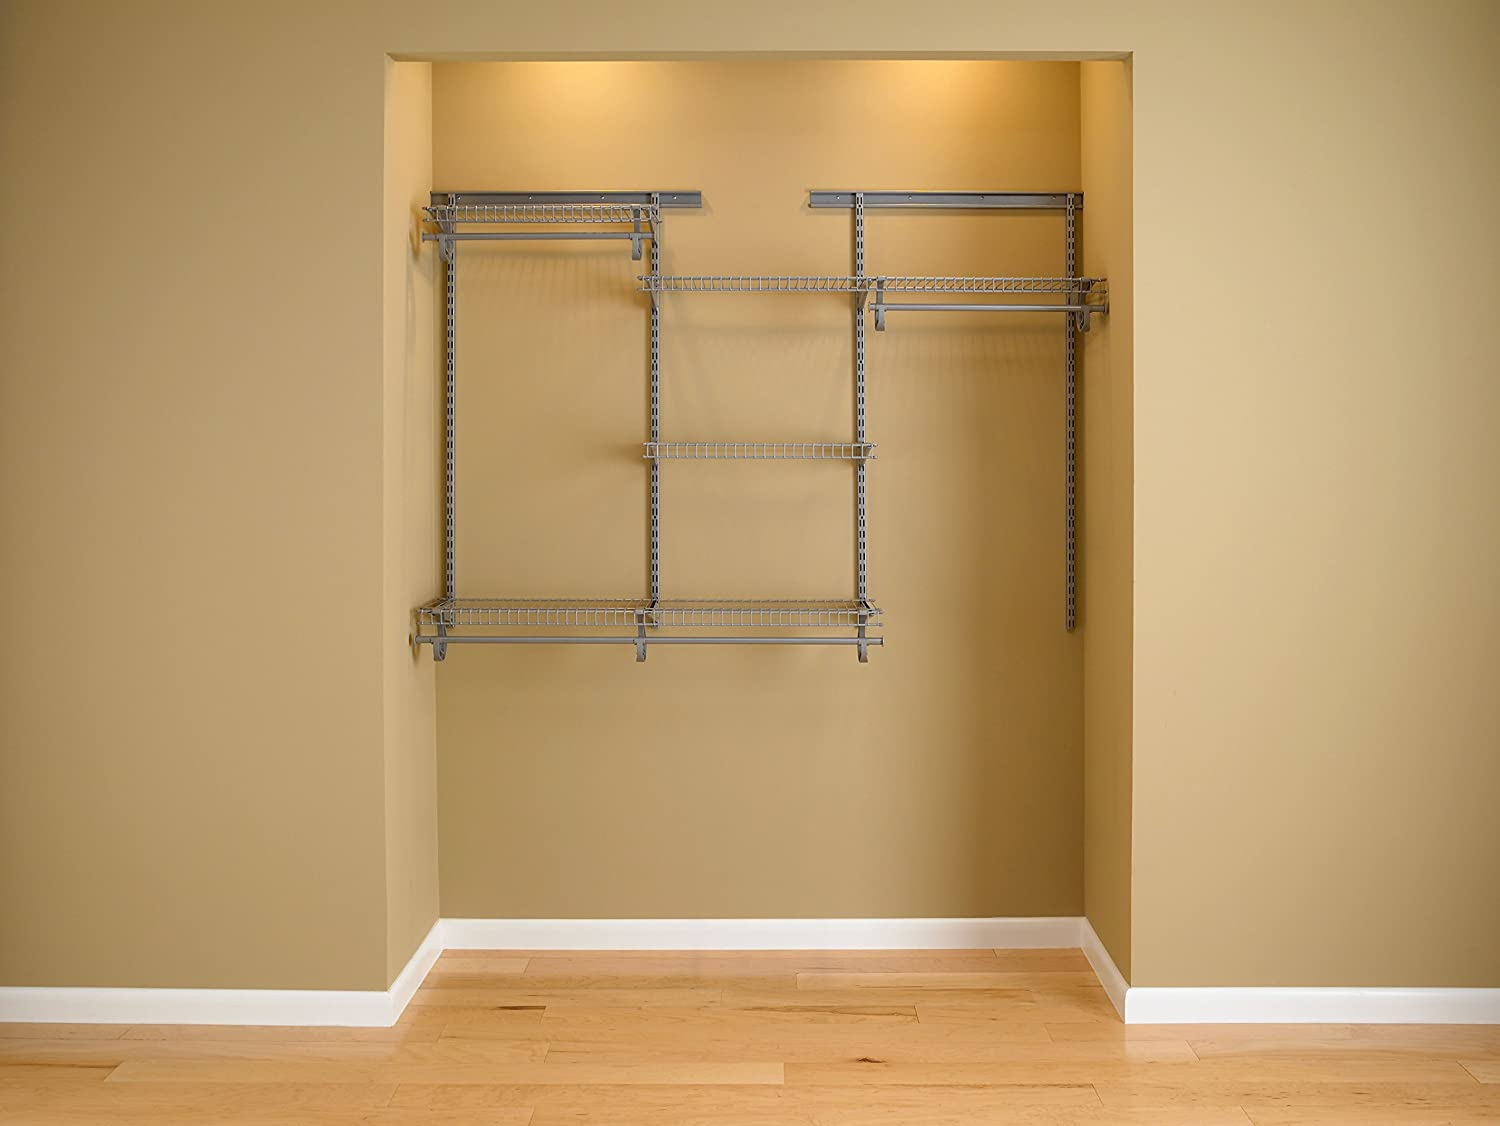 Beau Amazon.com: ClosetMaid 78808 ShelfTrack 4ft. To 6ft. Adjustable Closet  Organizer Kit, Satin Chrome: Home U0026 Kitchen